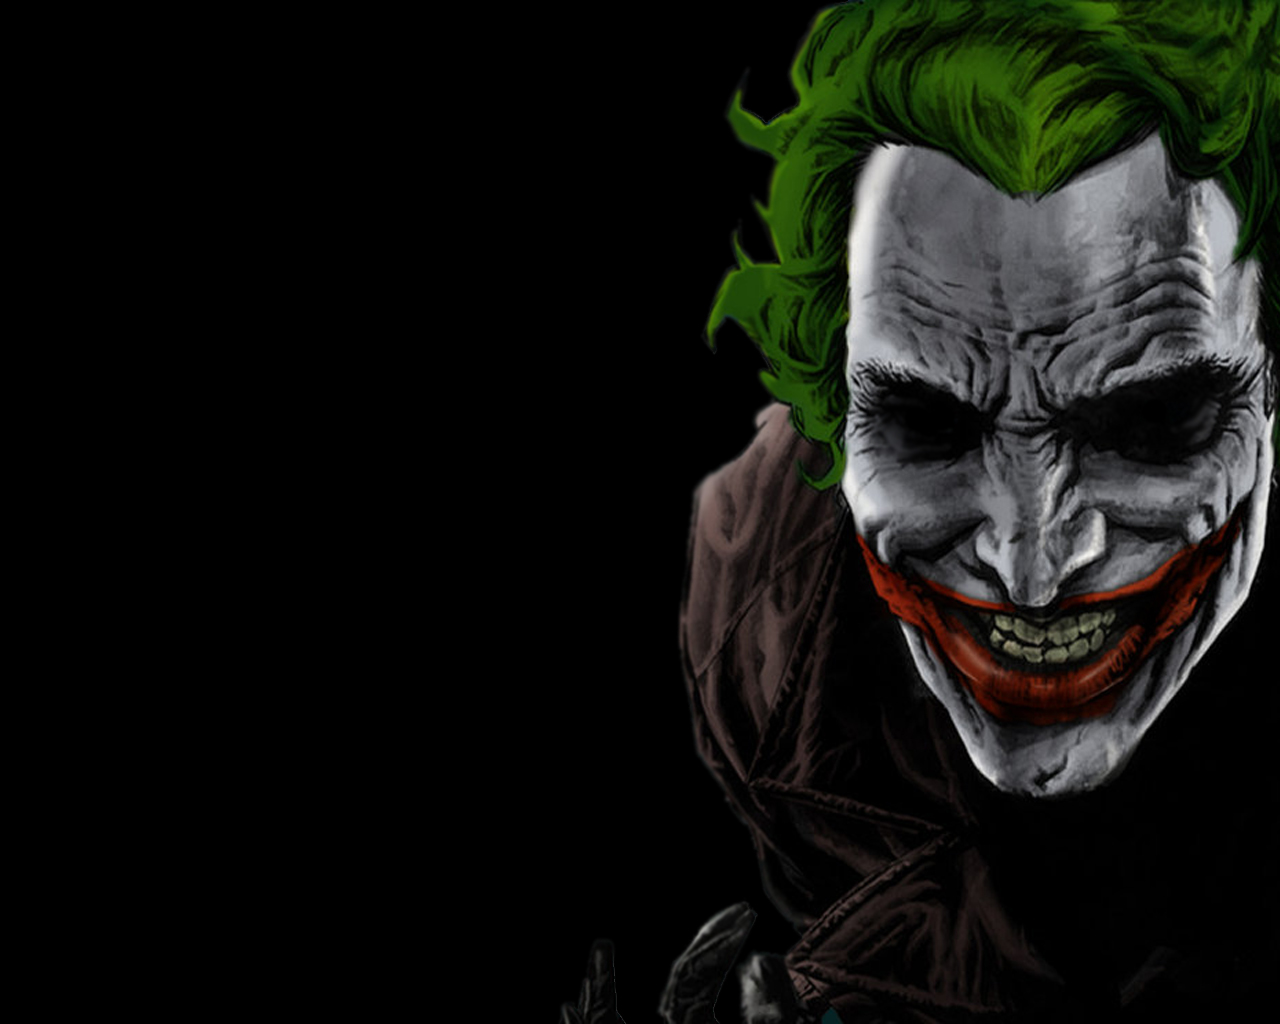 joker   the joker Wallpaper fanpopcom 1280x1024